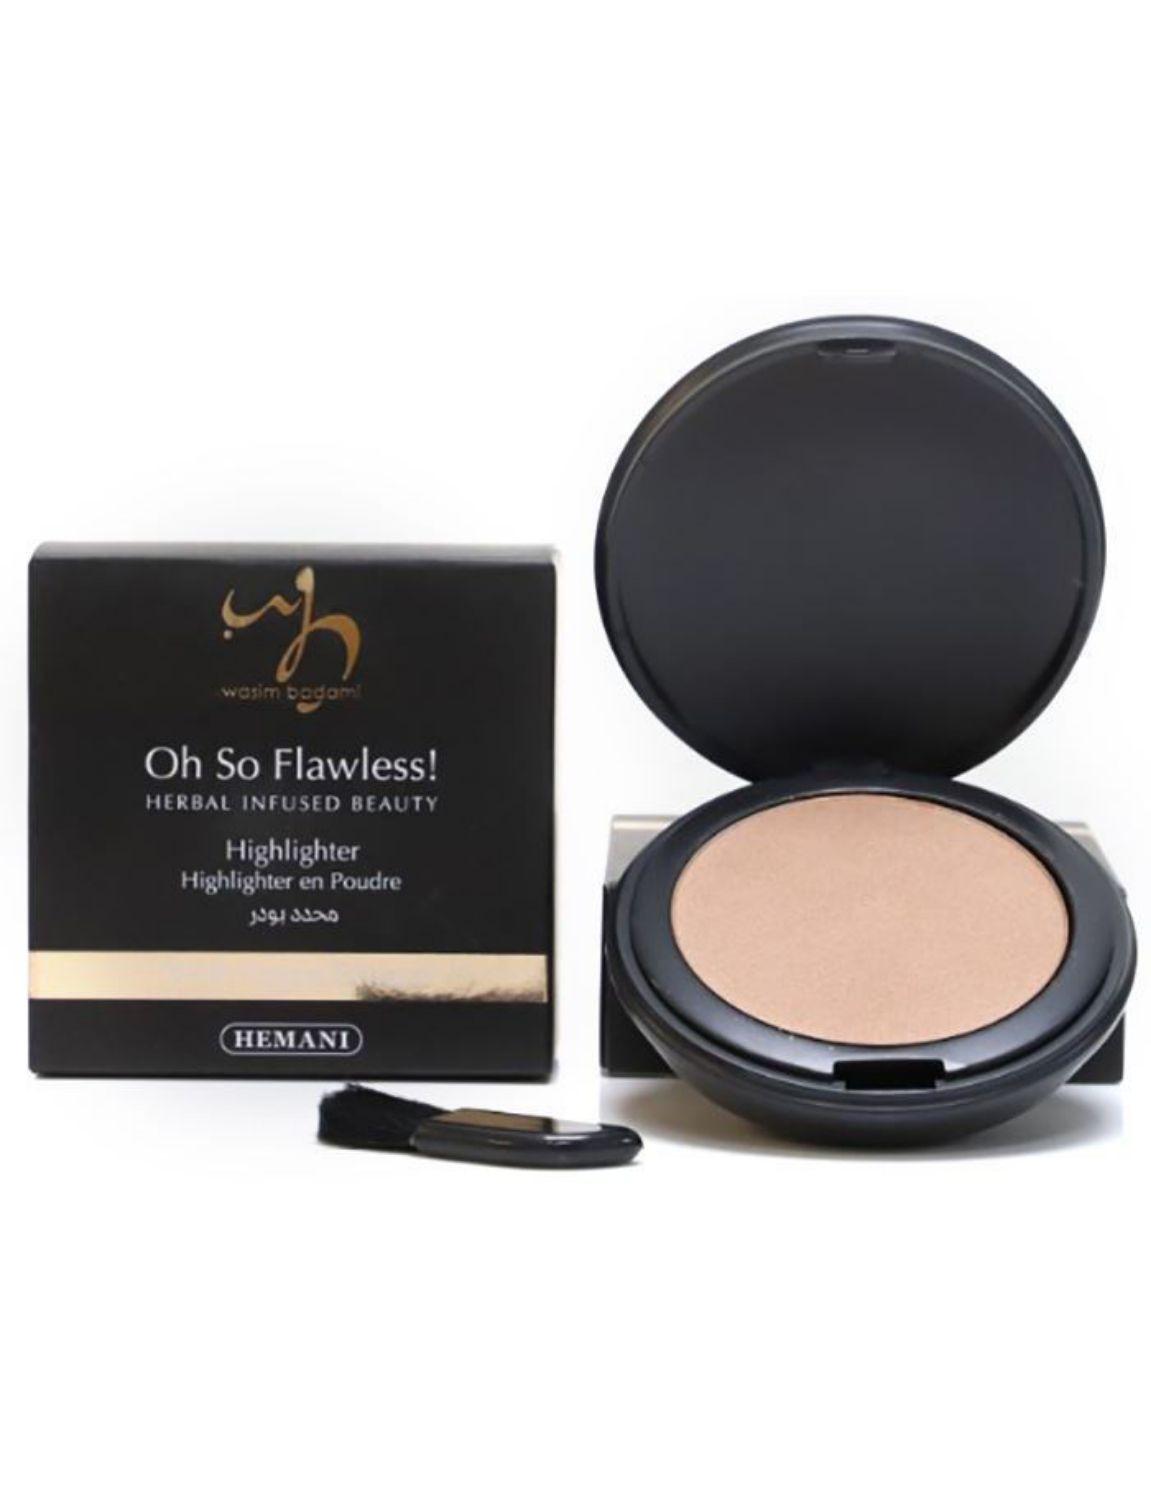 herbal infused beauty powder highlighter 210 bright beam